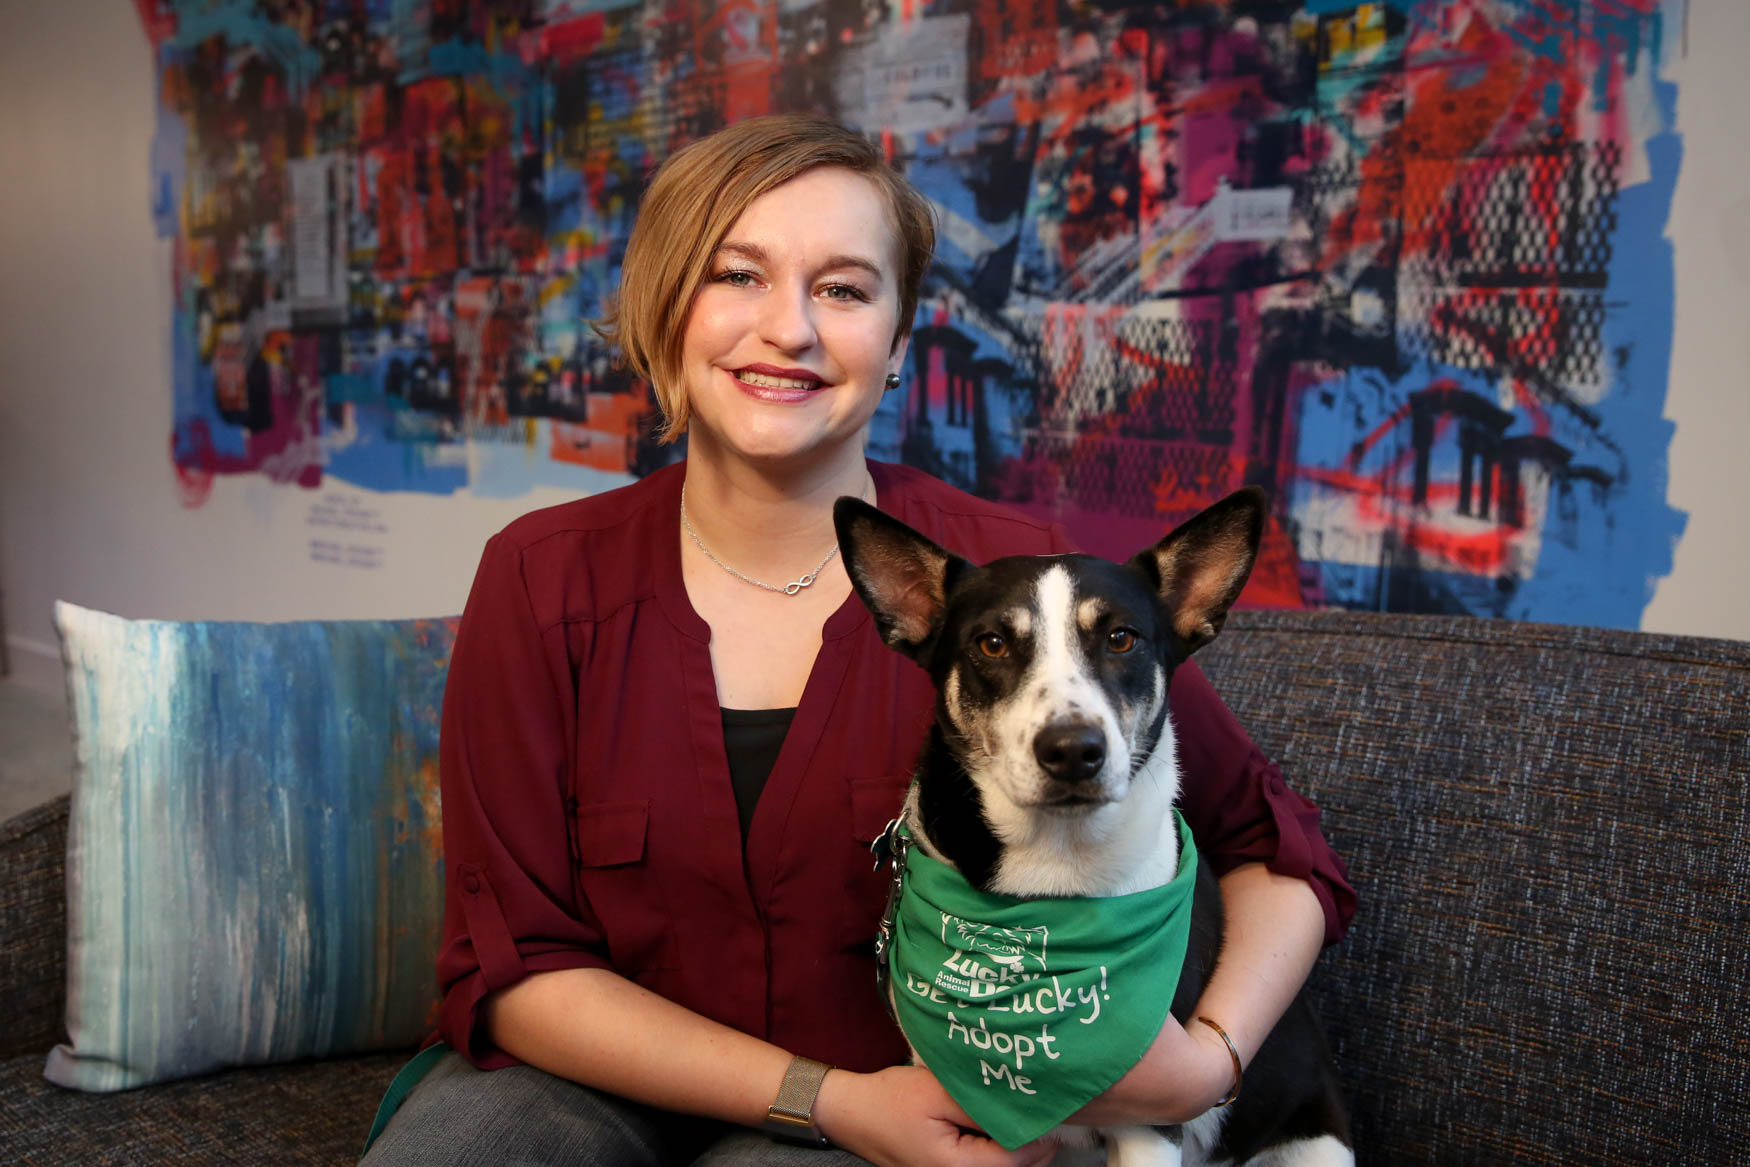 Meet{ } Oreo and Marieke, a a 3-year-old Shepherd/Husky mix, and a 28-year-old human respectively. Photo location: Moxy Washington, D.C. Downtown (Image: Amanda Andrade-Rhoades/ DC Refined)